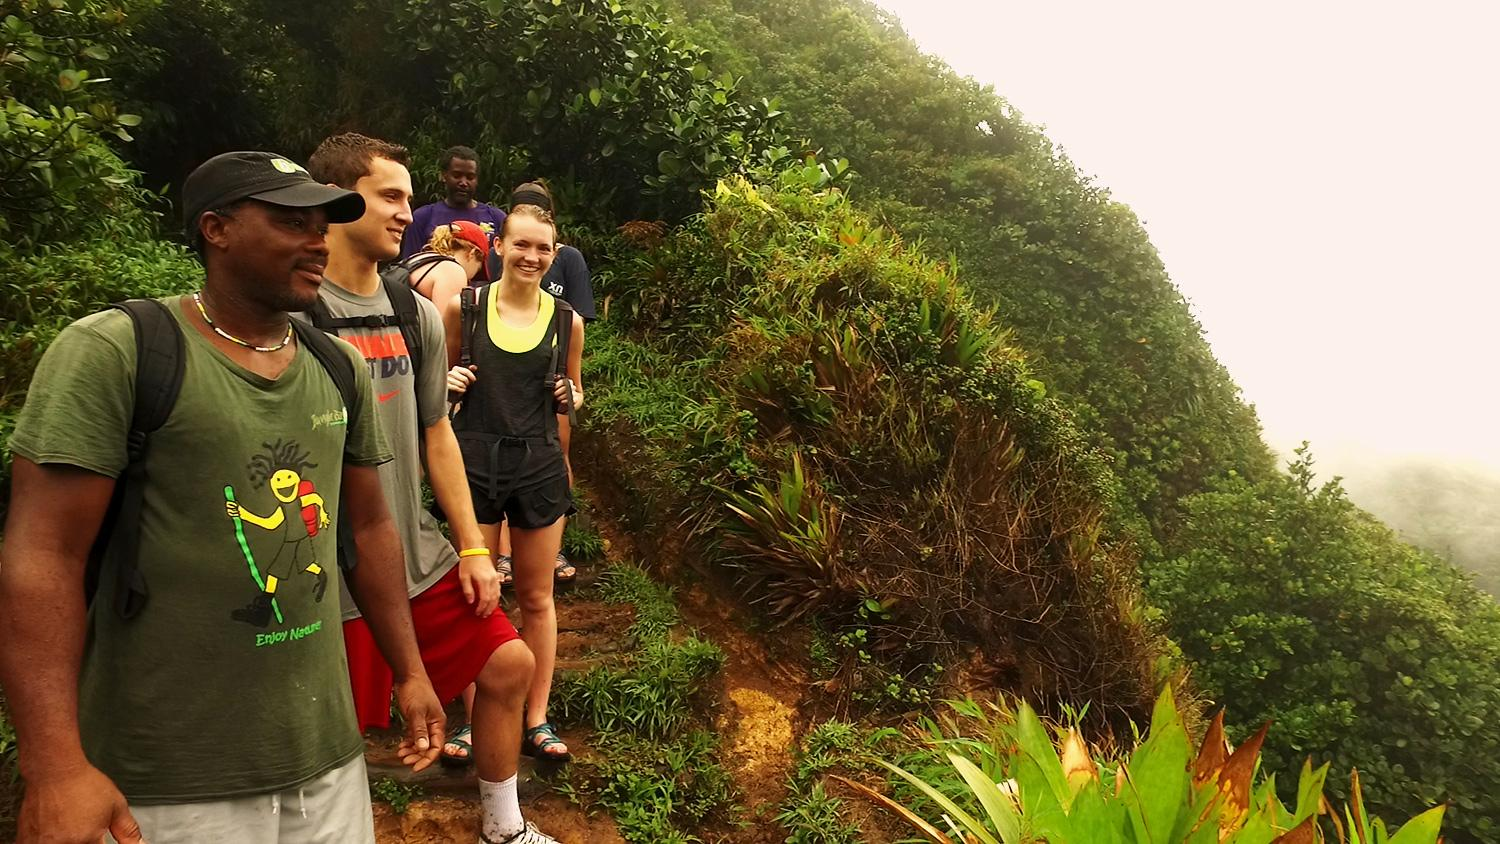 Students take in Dominica's scenic beauty and learn about its potential as an eco-tourism destination.